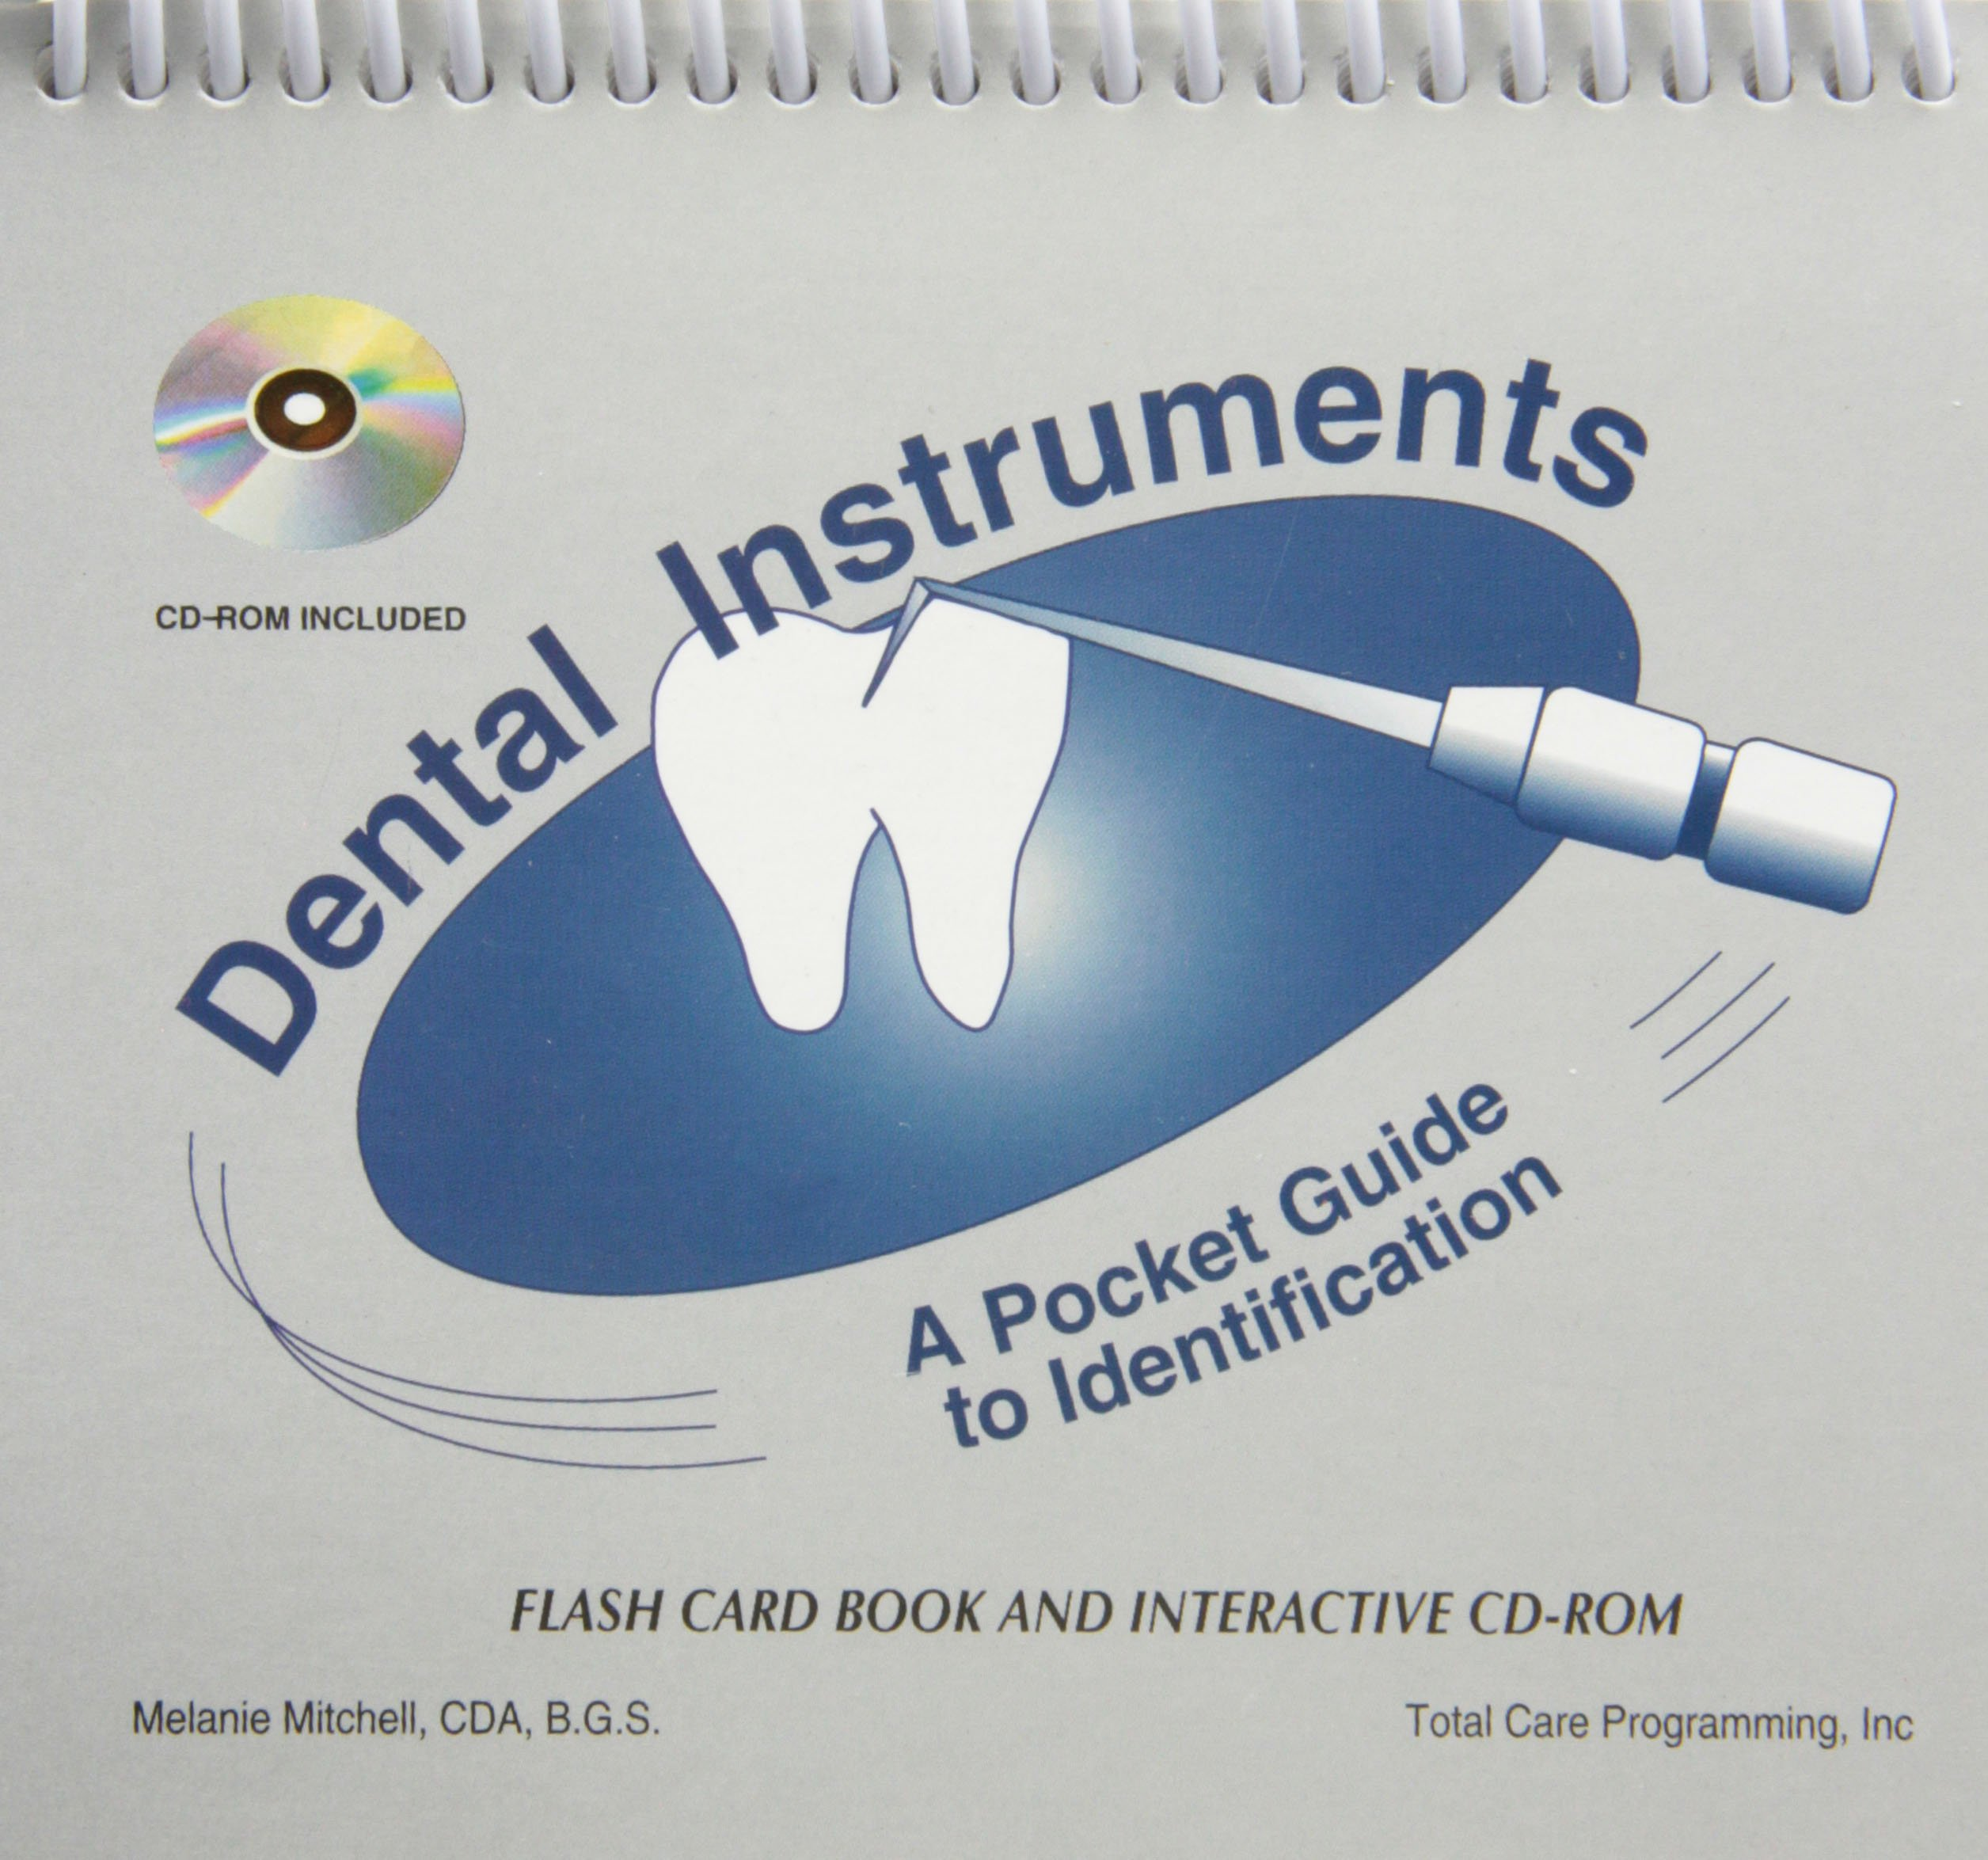 Dental Instruments: A Pocket Guide to Identification: Published by Total Care Programming, Inc.